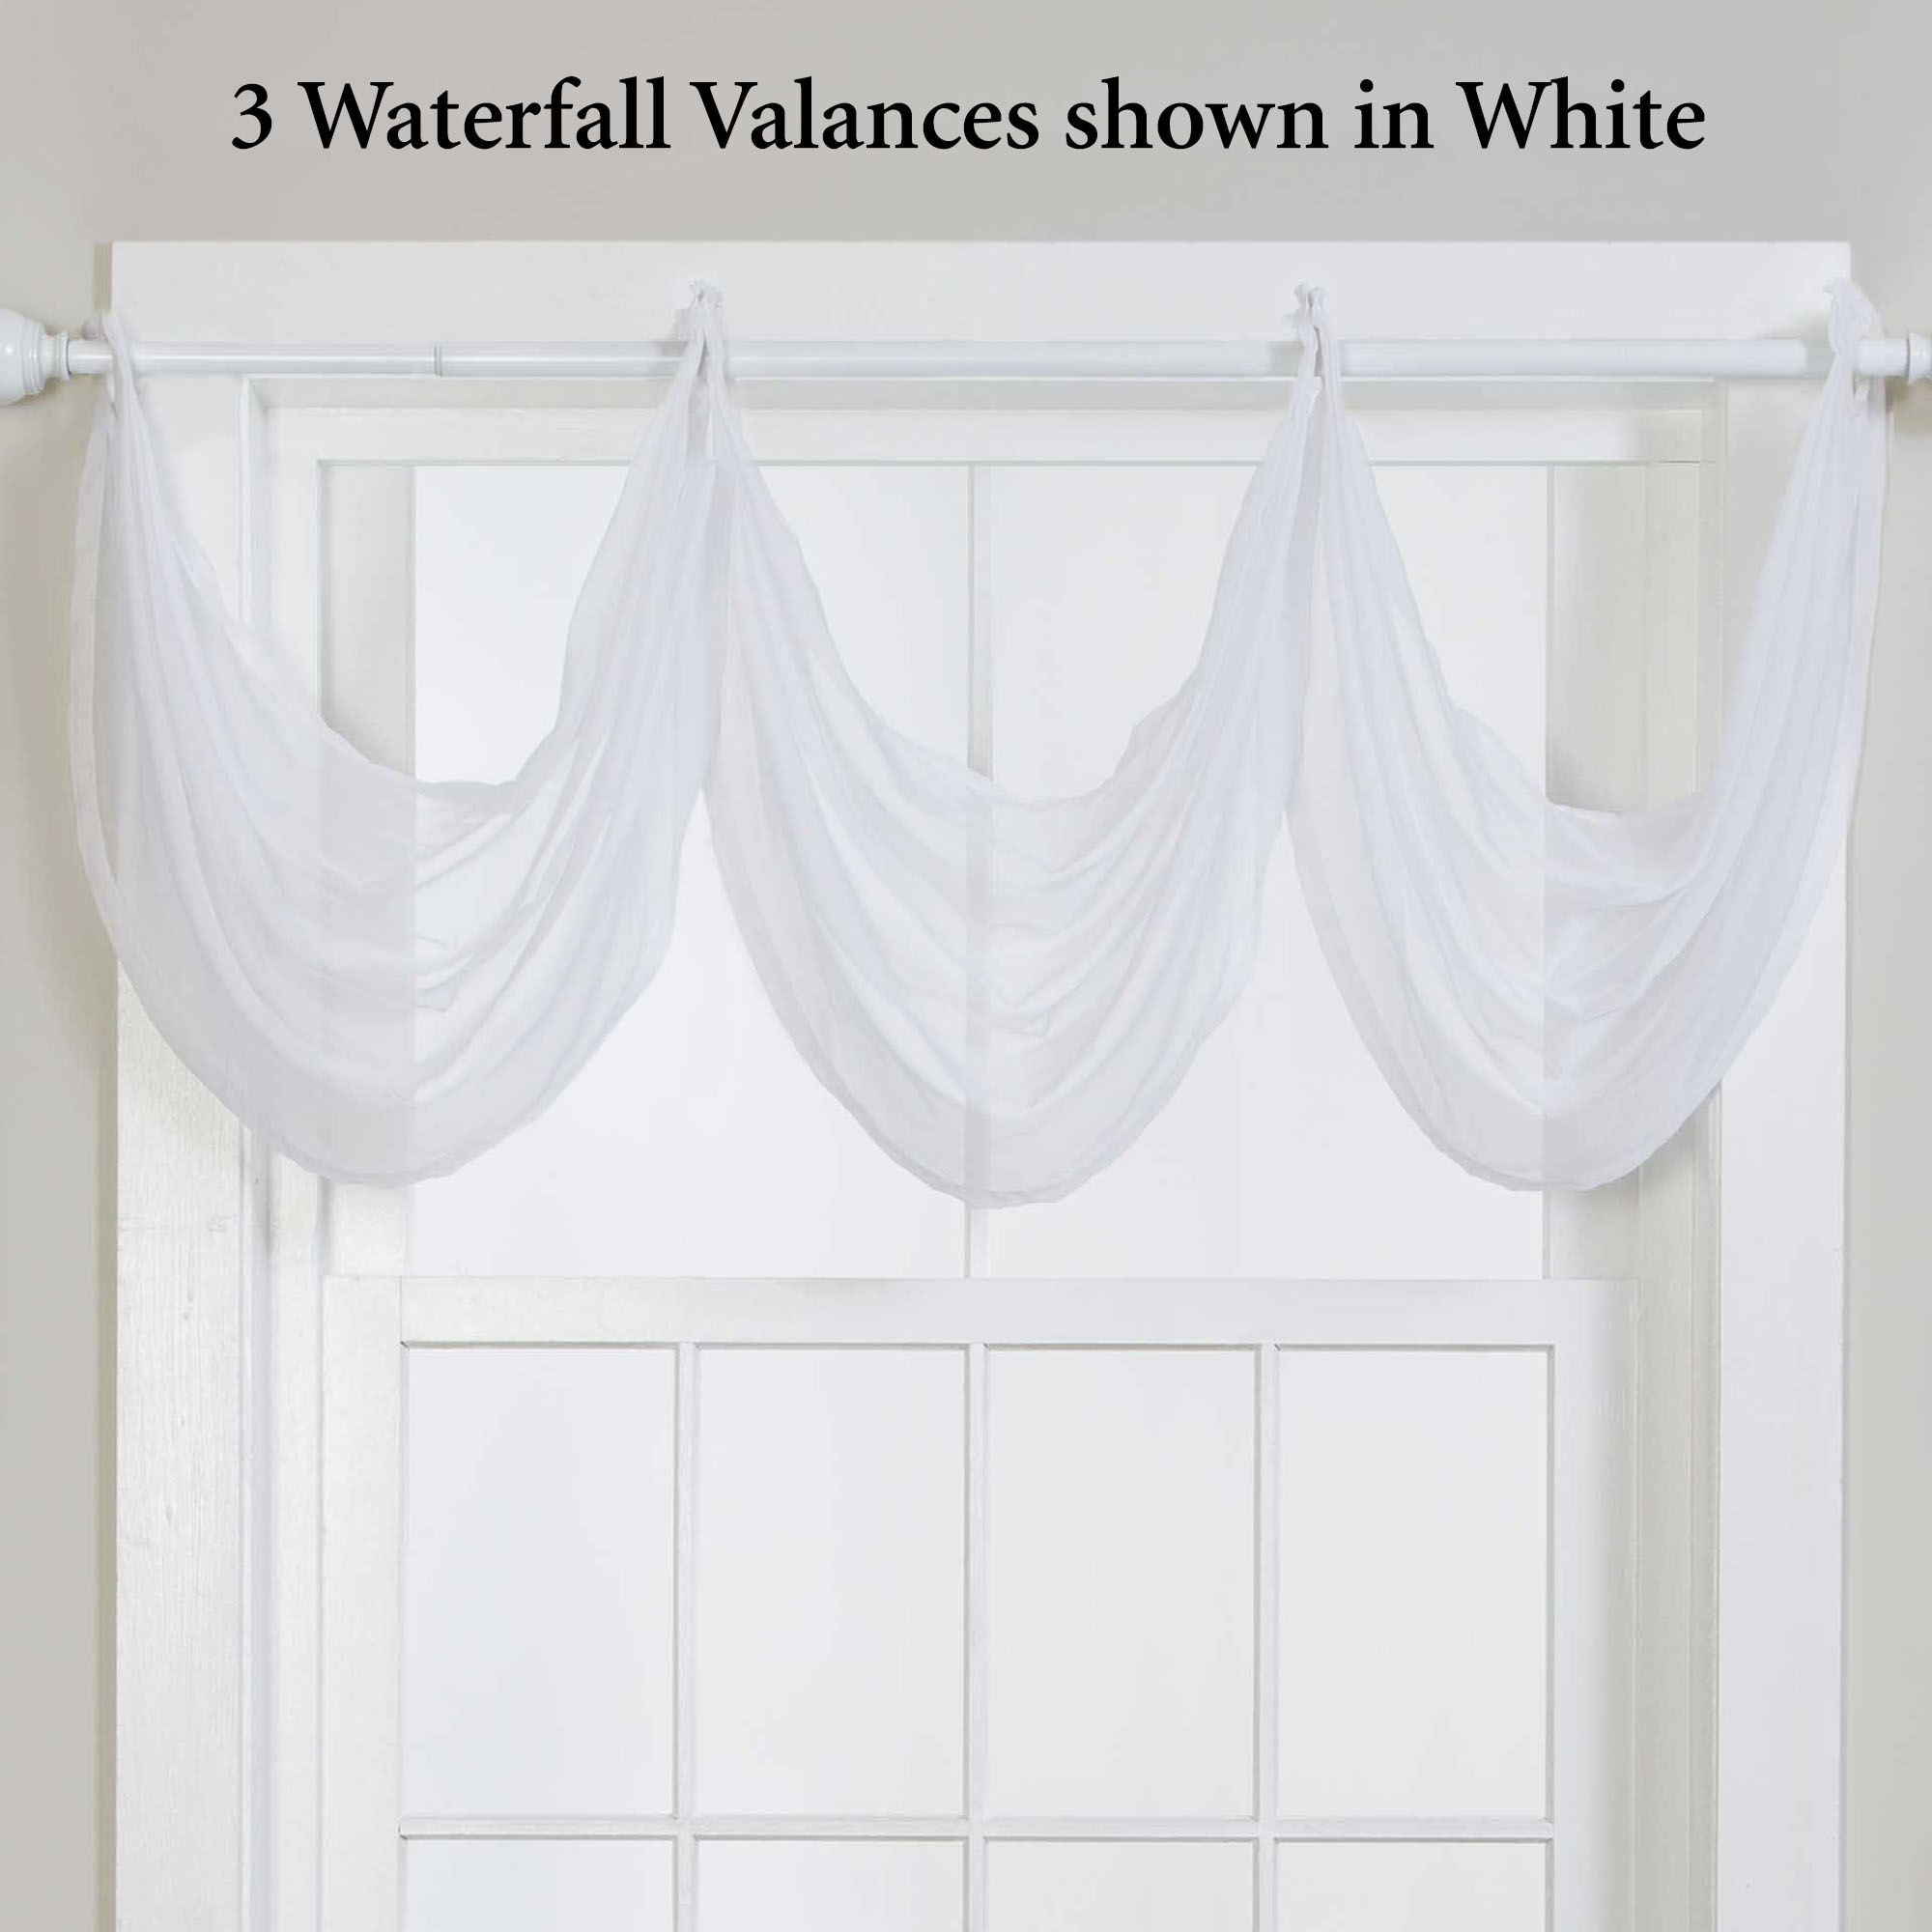 valances ready bathroom valance tier cafe panel itm kitchen sheer made curtain voile